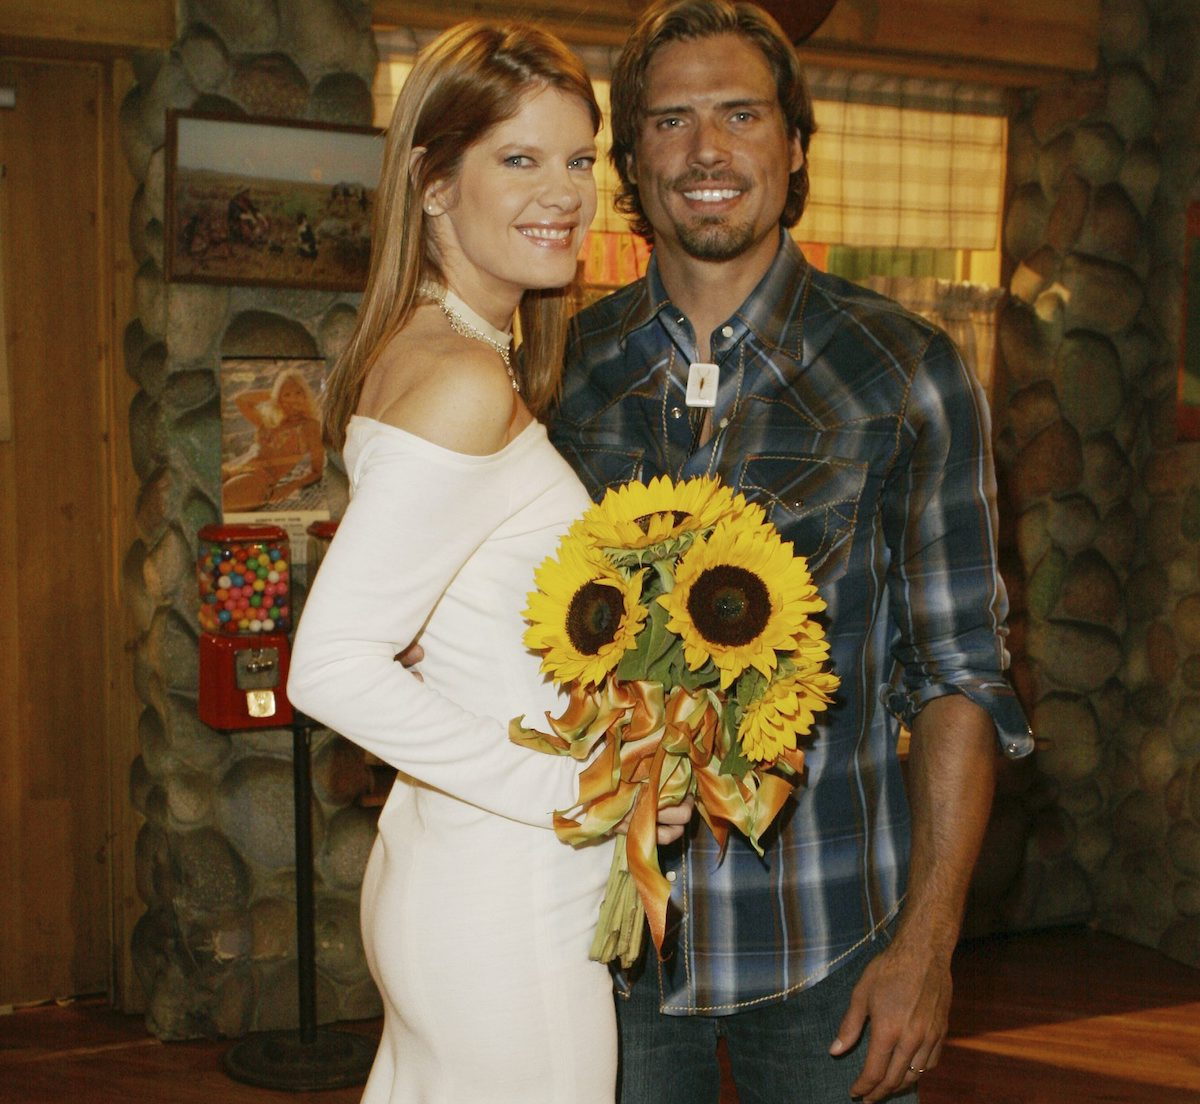 "yr nick phyllis texas bar wedding Joshua Morrow, Michelle Stafford ""The Young and the Restless"" Set CBS Television City Los Angeles 9/15/06 ©Brian Lowe/jpistudios.com 310-657-9661"